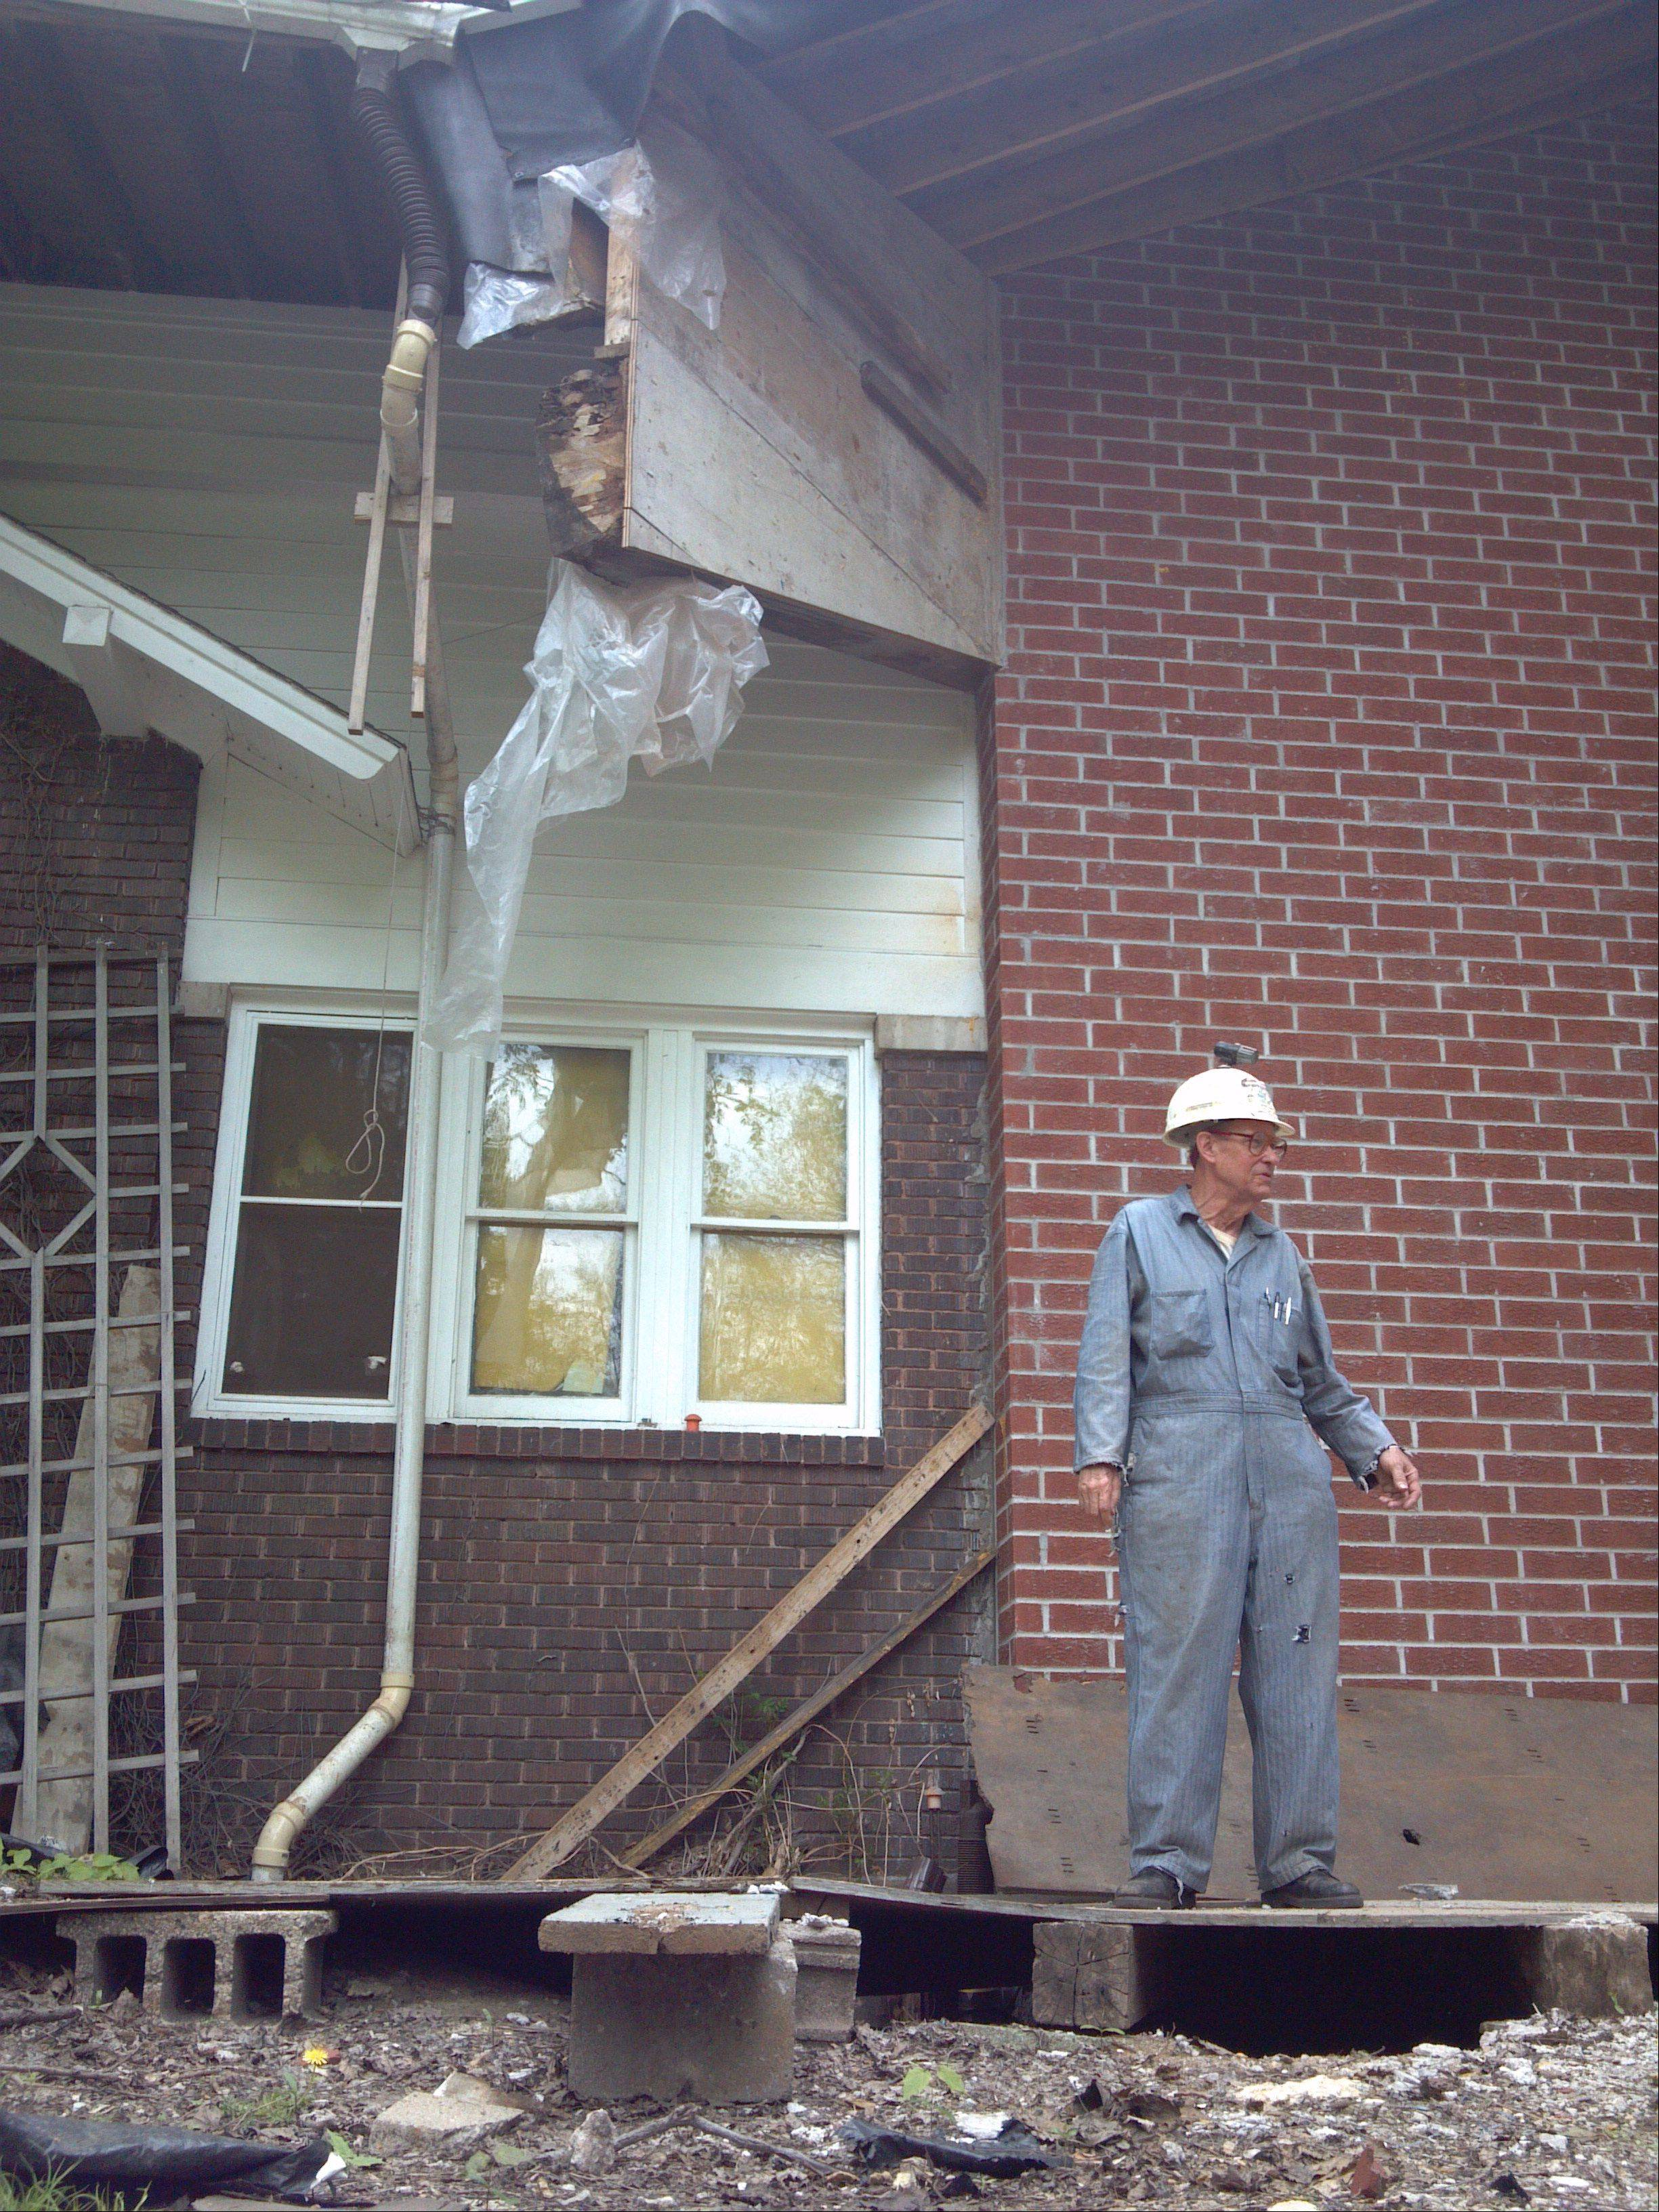 Cliff McIlvaine, who was sued by the city of St. Charles in an effort to get him to finish a project that he first pulled a permit for in 1975, stands on a landing between his original home to the left and new, super-insulated addition on the right, which he hopes to turn into a museum.